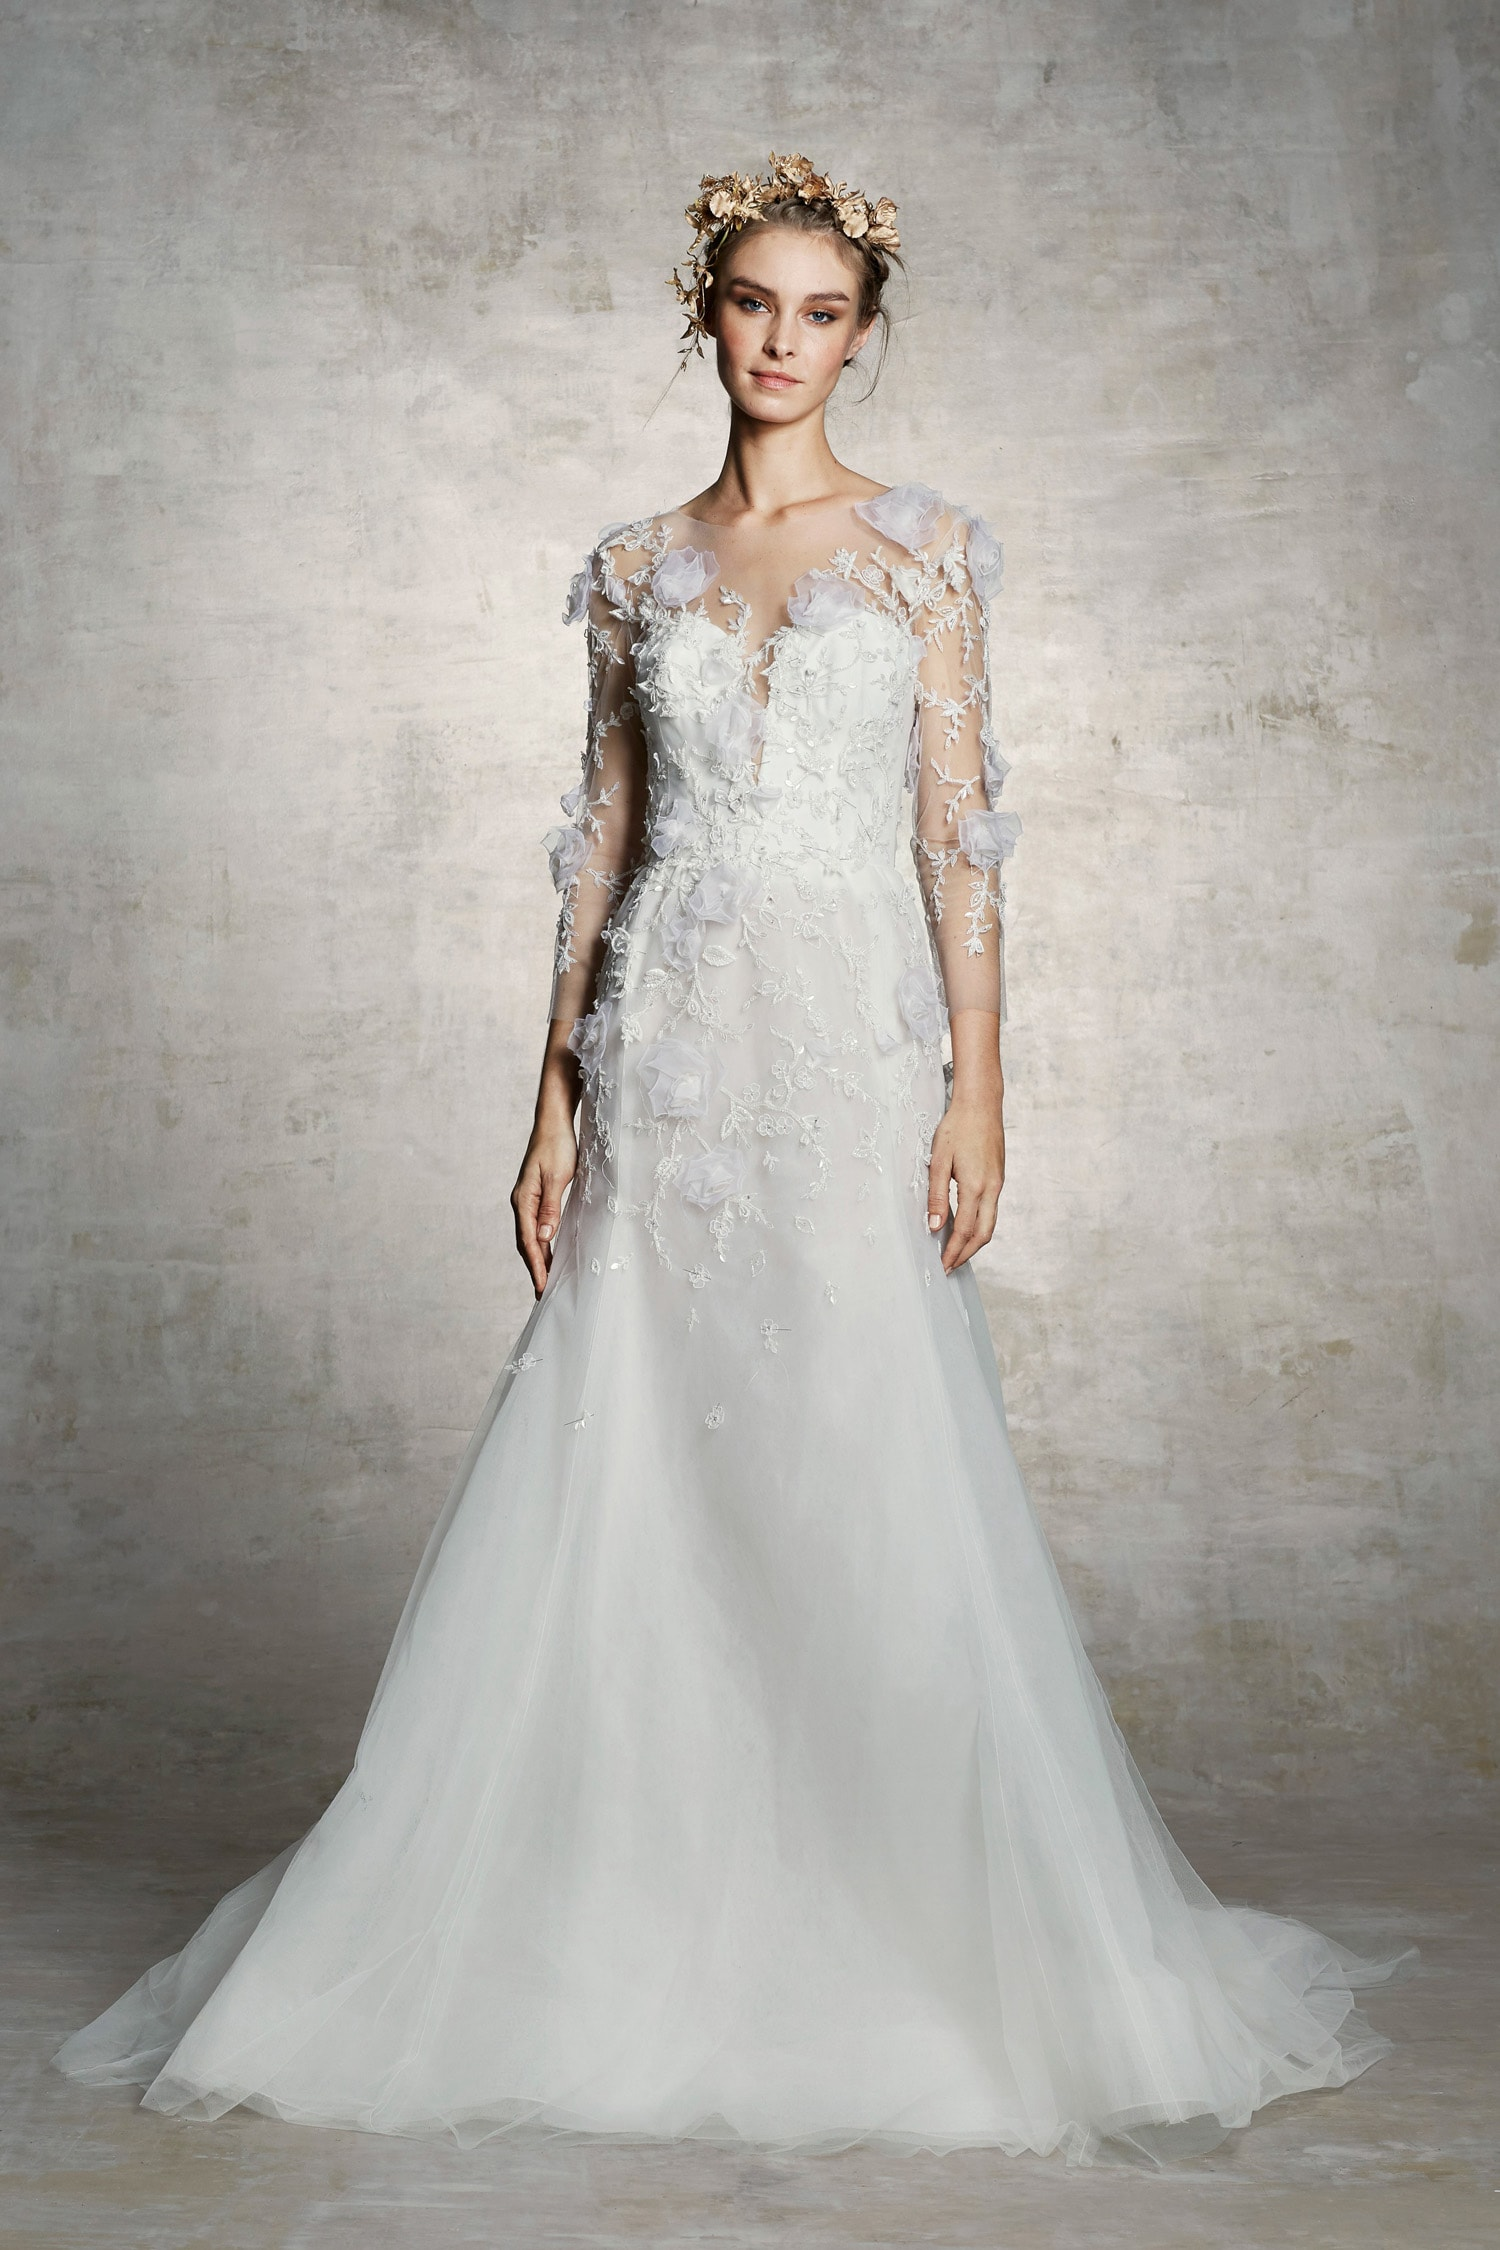 Couture Wedding Gowns By Marchesa Dimitra S Bridal Chicago Il